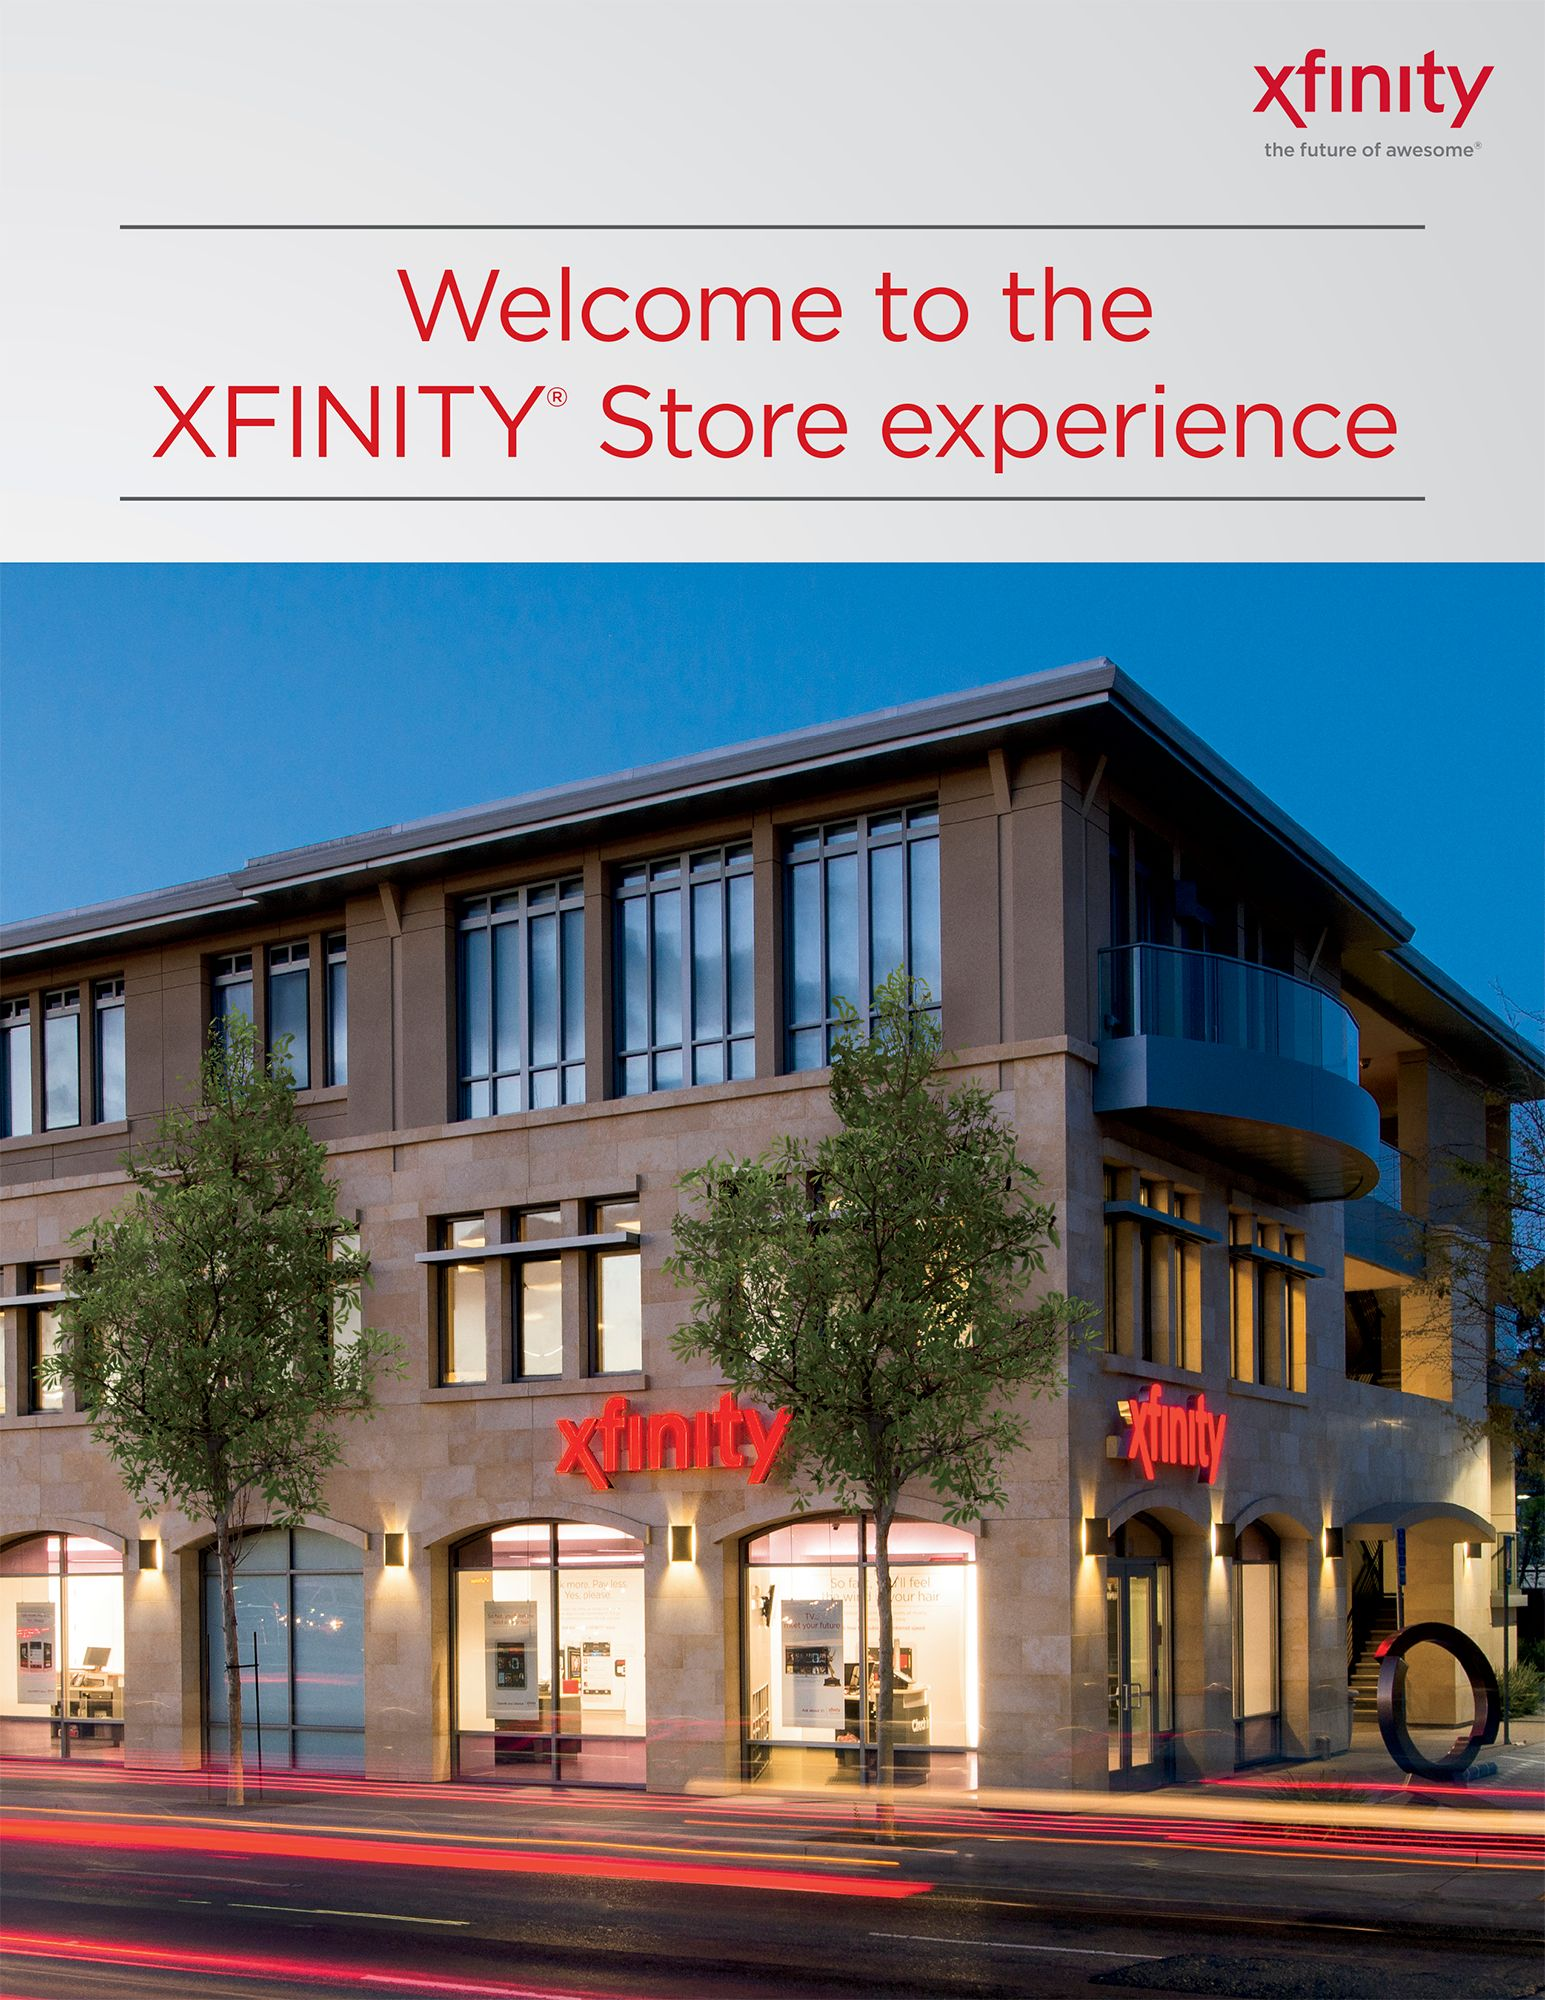 xfinitypublished.jpg